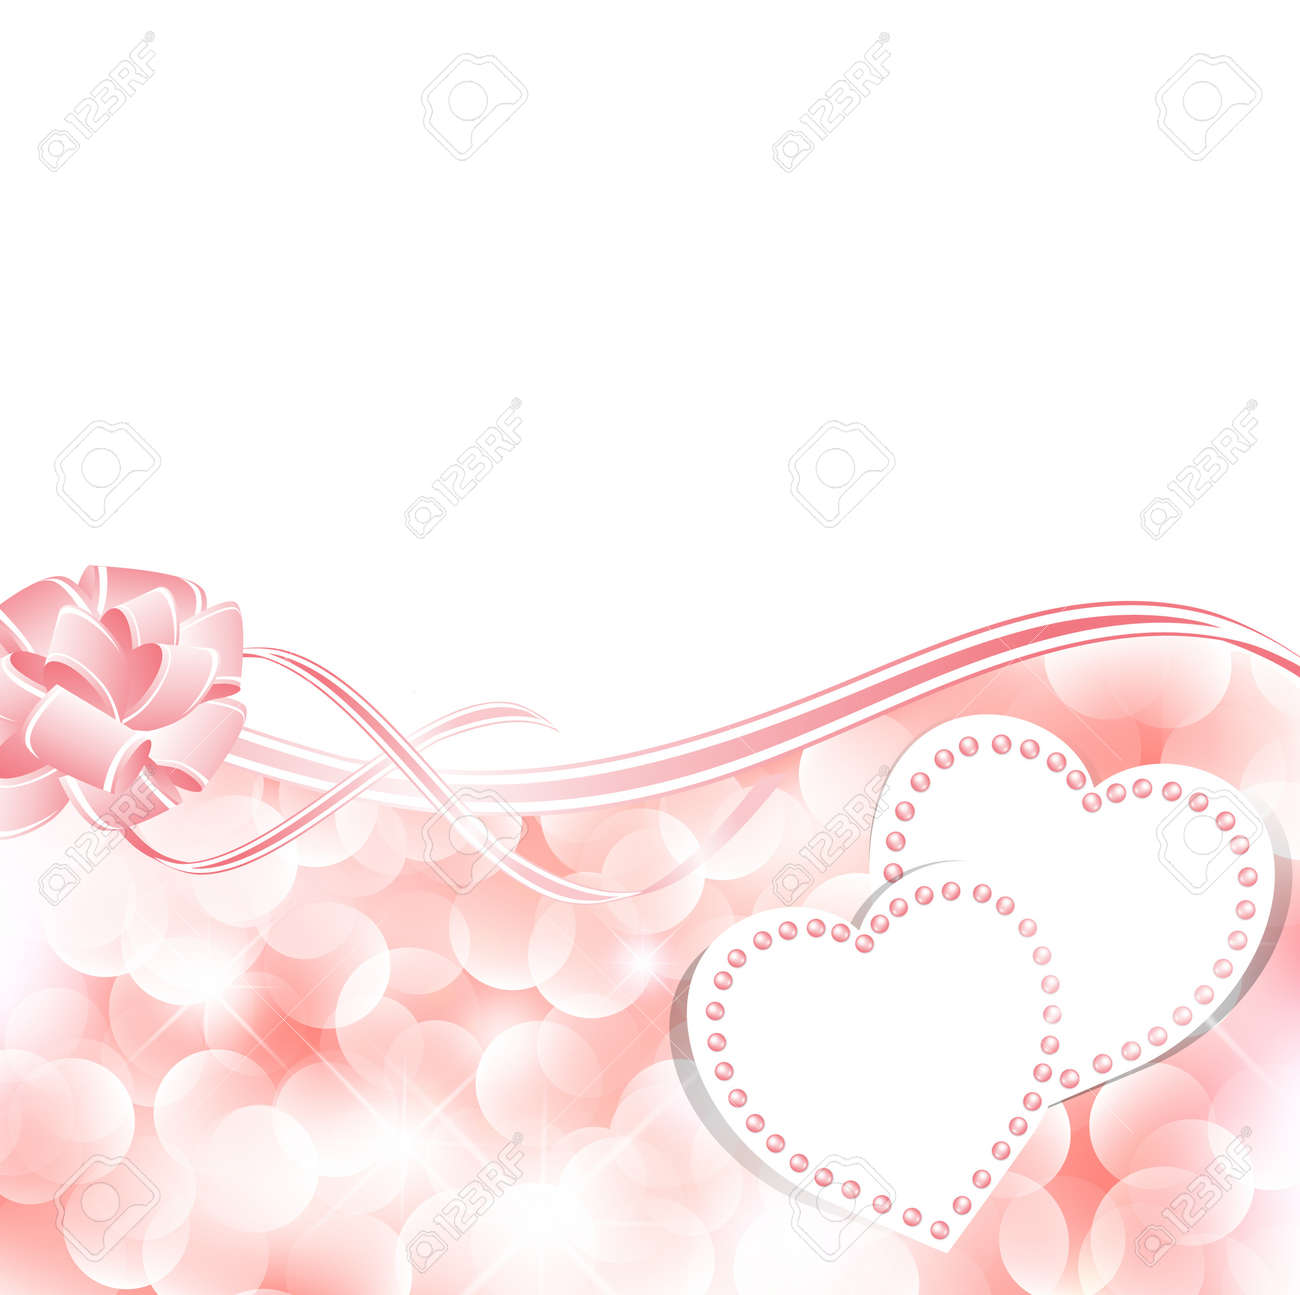 Wedding Greetings Or Invitation Card Template With Hearts Royalty